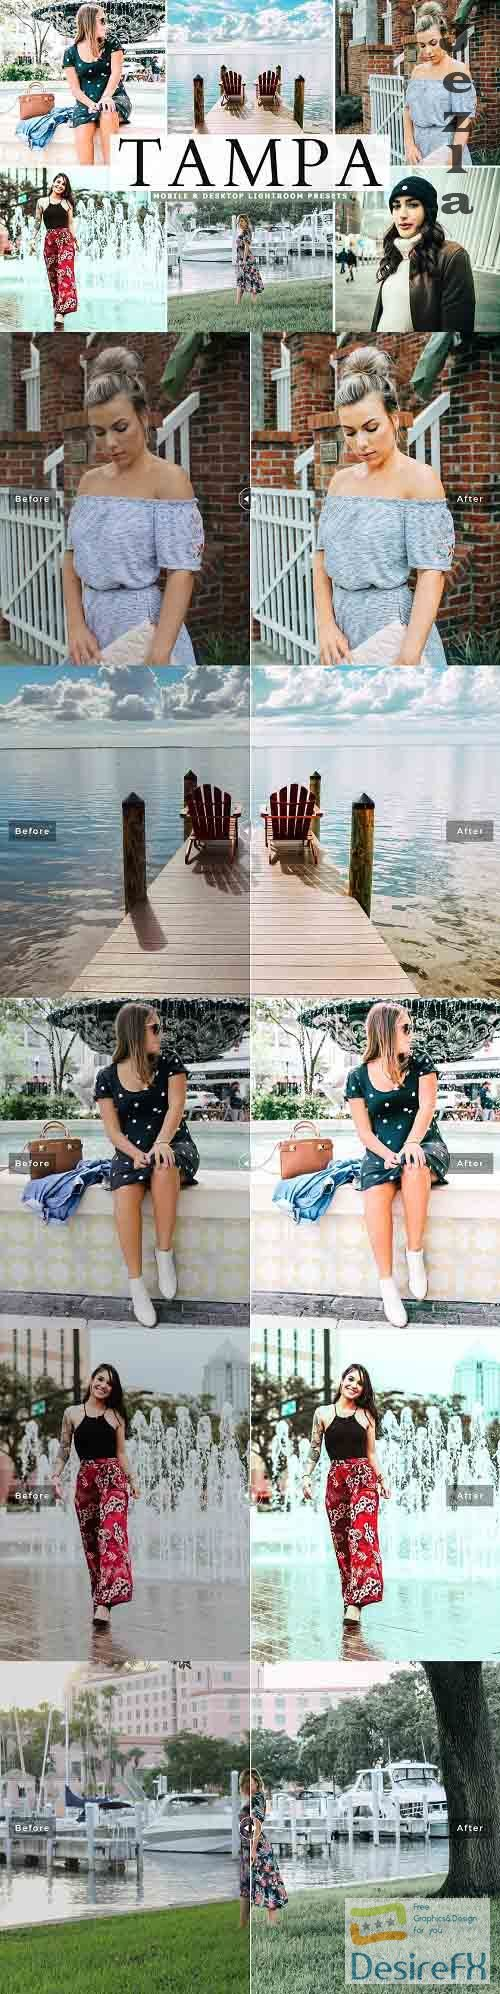 Tampa Lightroom Presets Pack - 5166764 - Mobile & Desktop